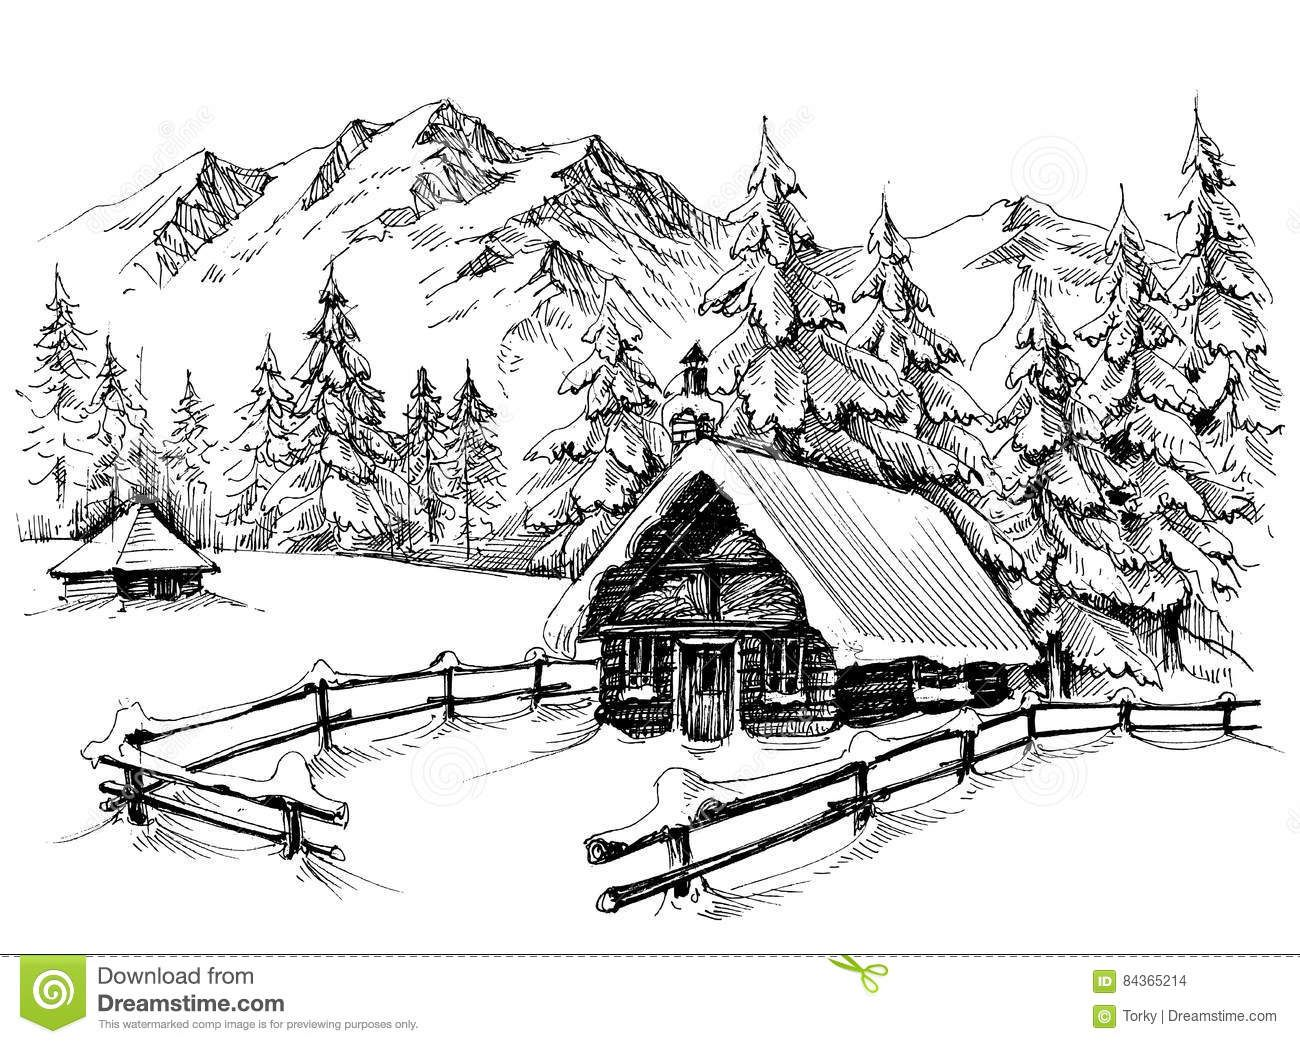 Download 375 Winter Cabin Drawing Stock Illustrations Vectors Clipart For Free Or Amazingly Low R Landscape Pencil Drawings Landscape Sketch Winter Drawings